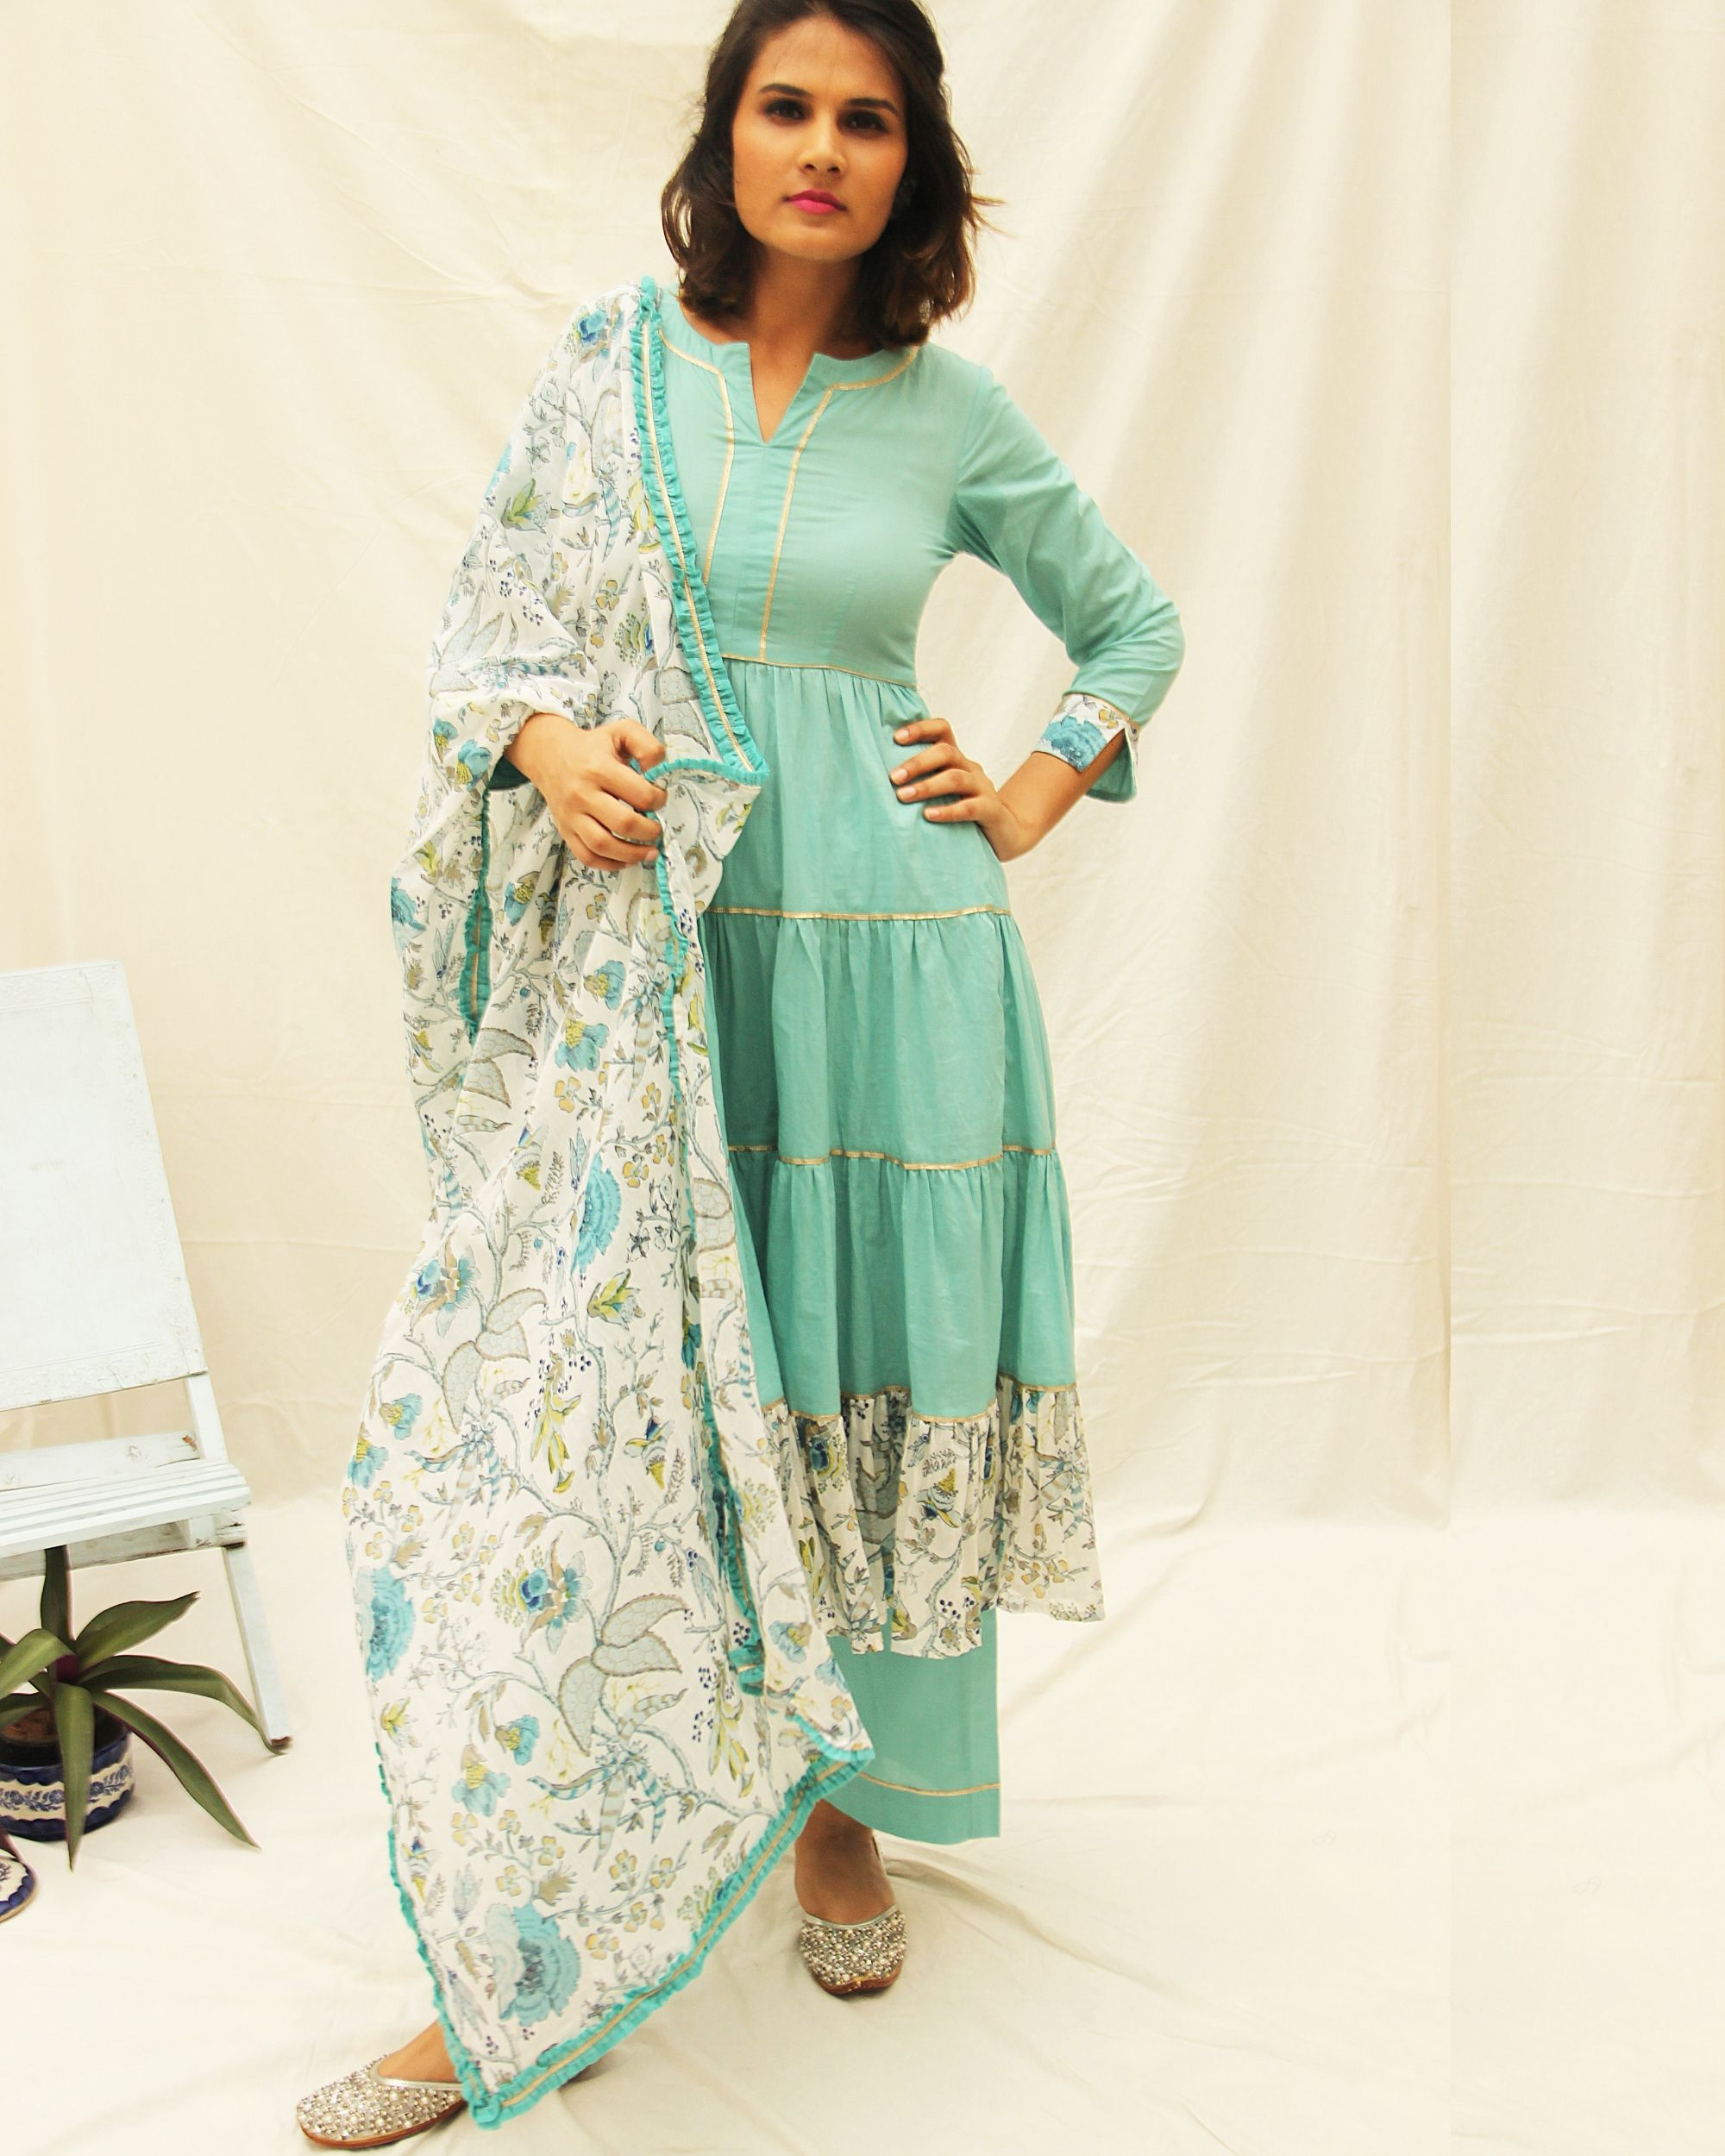 Plain blue frilled kurta with Gota details paired with blue pants and printed floral dupatta - set of three